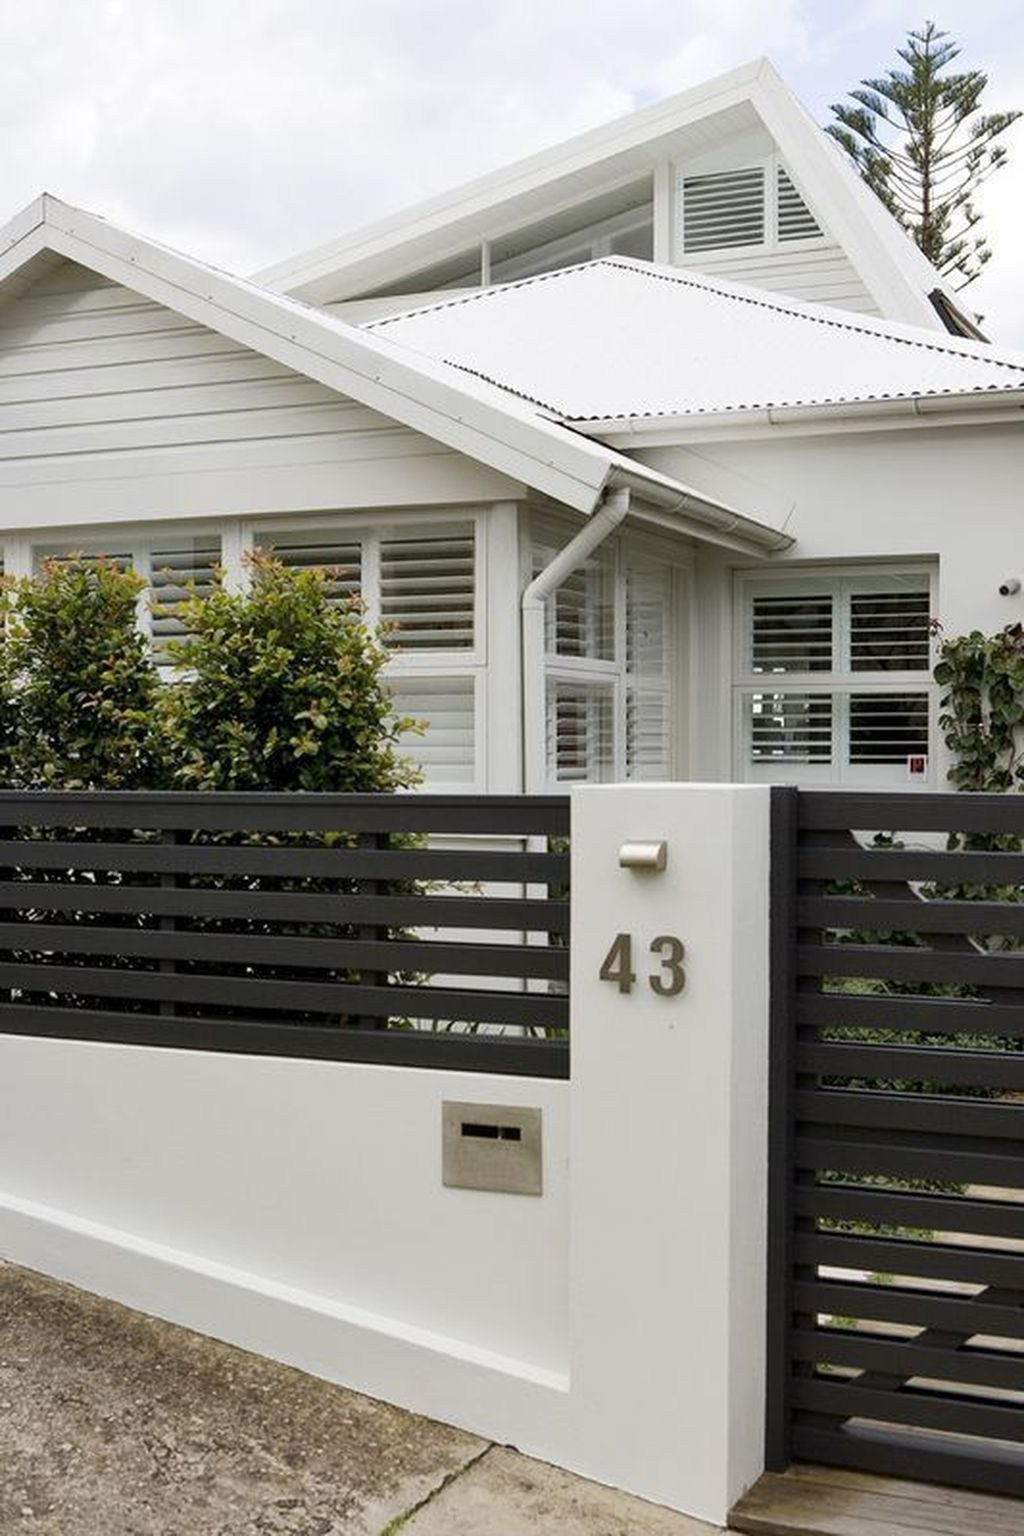 50 Front Yard Fence Ideas That You Need To Try Sweetyhomee Modern Fence Design House Entrance Modern Front Yard